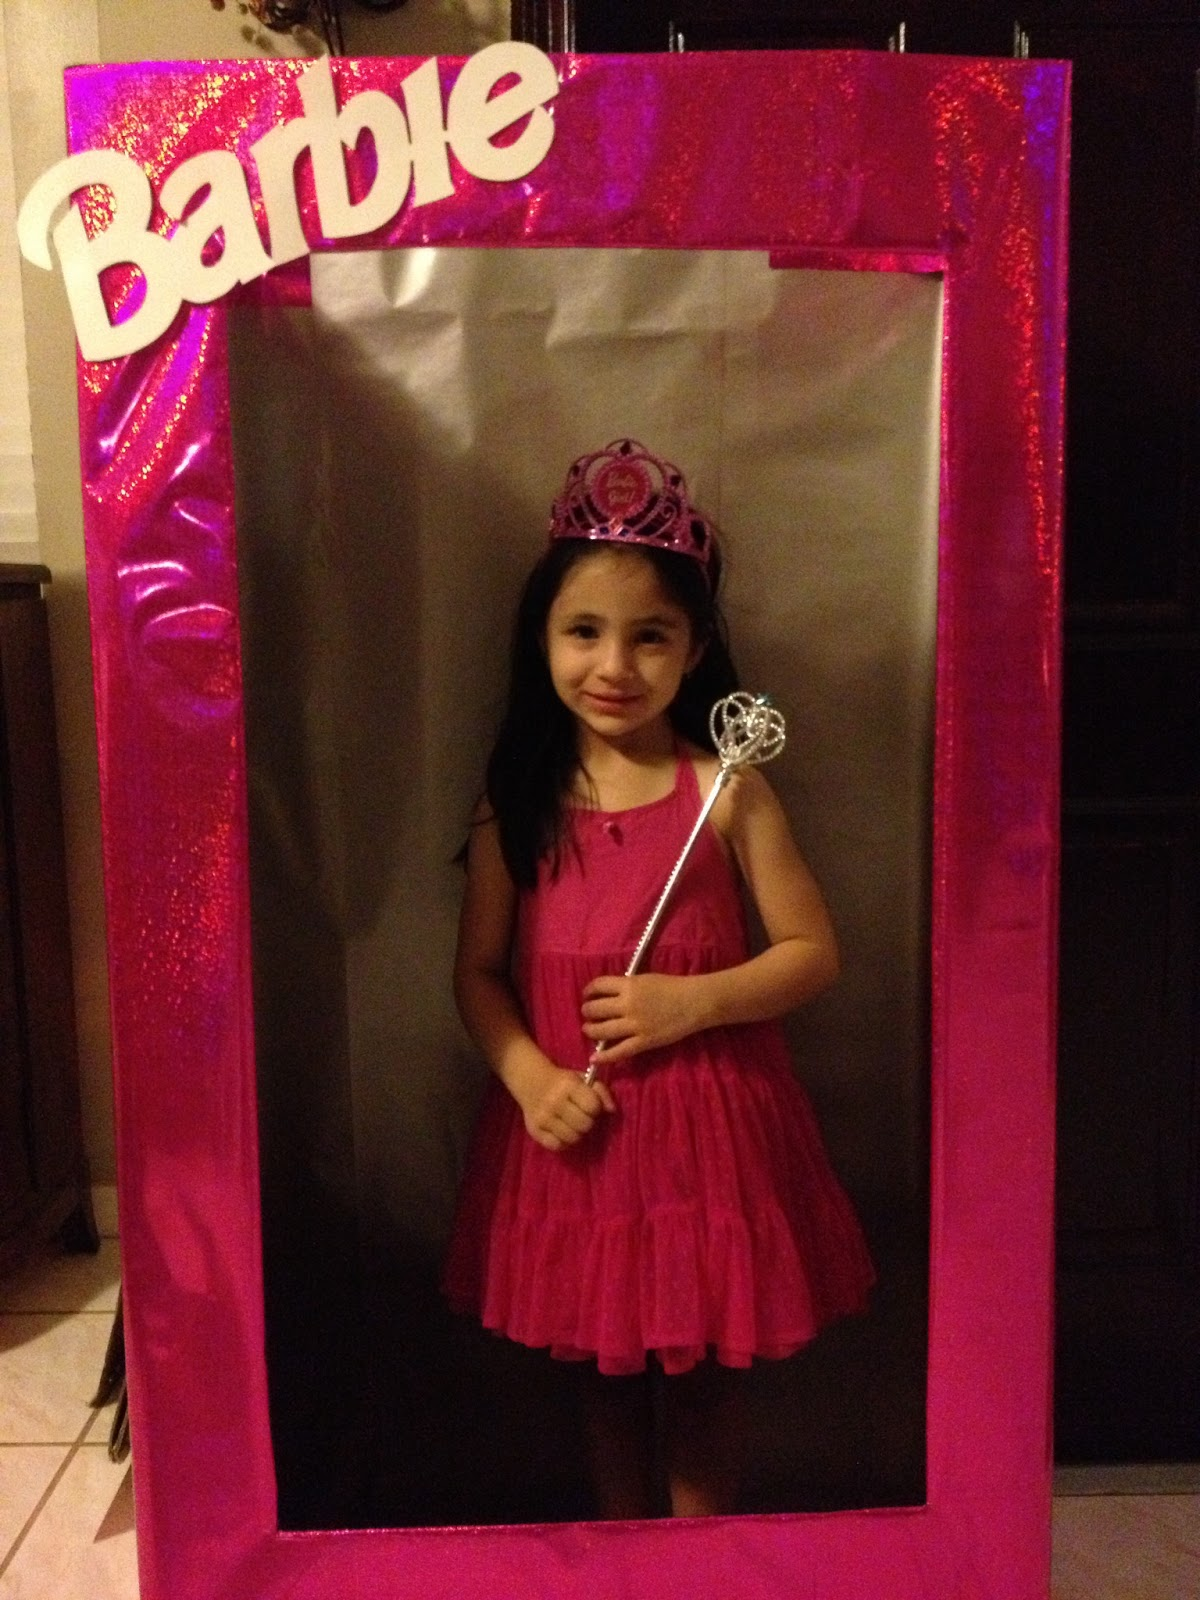 That's My Story!: Barbie Photo Booth